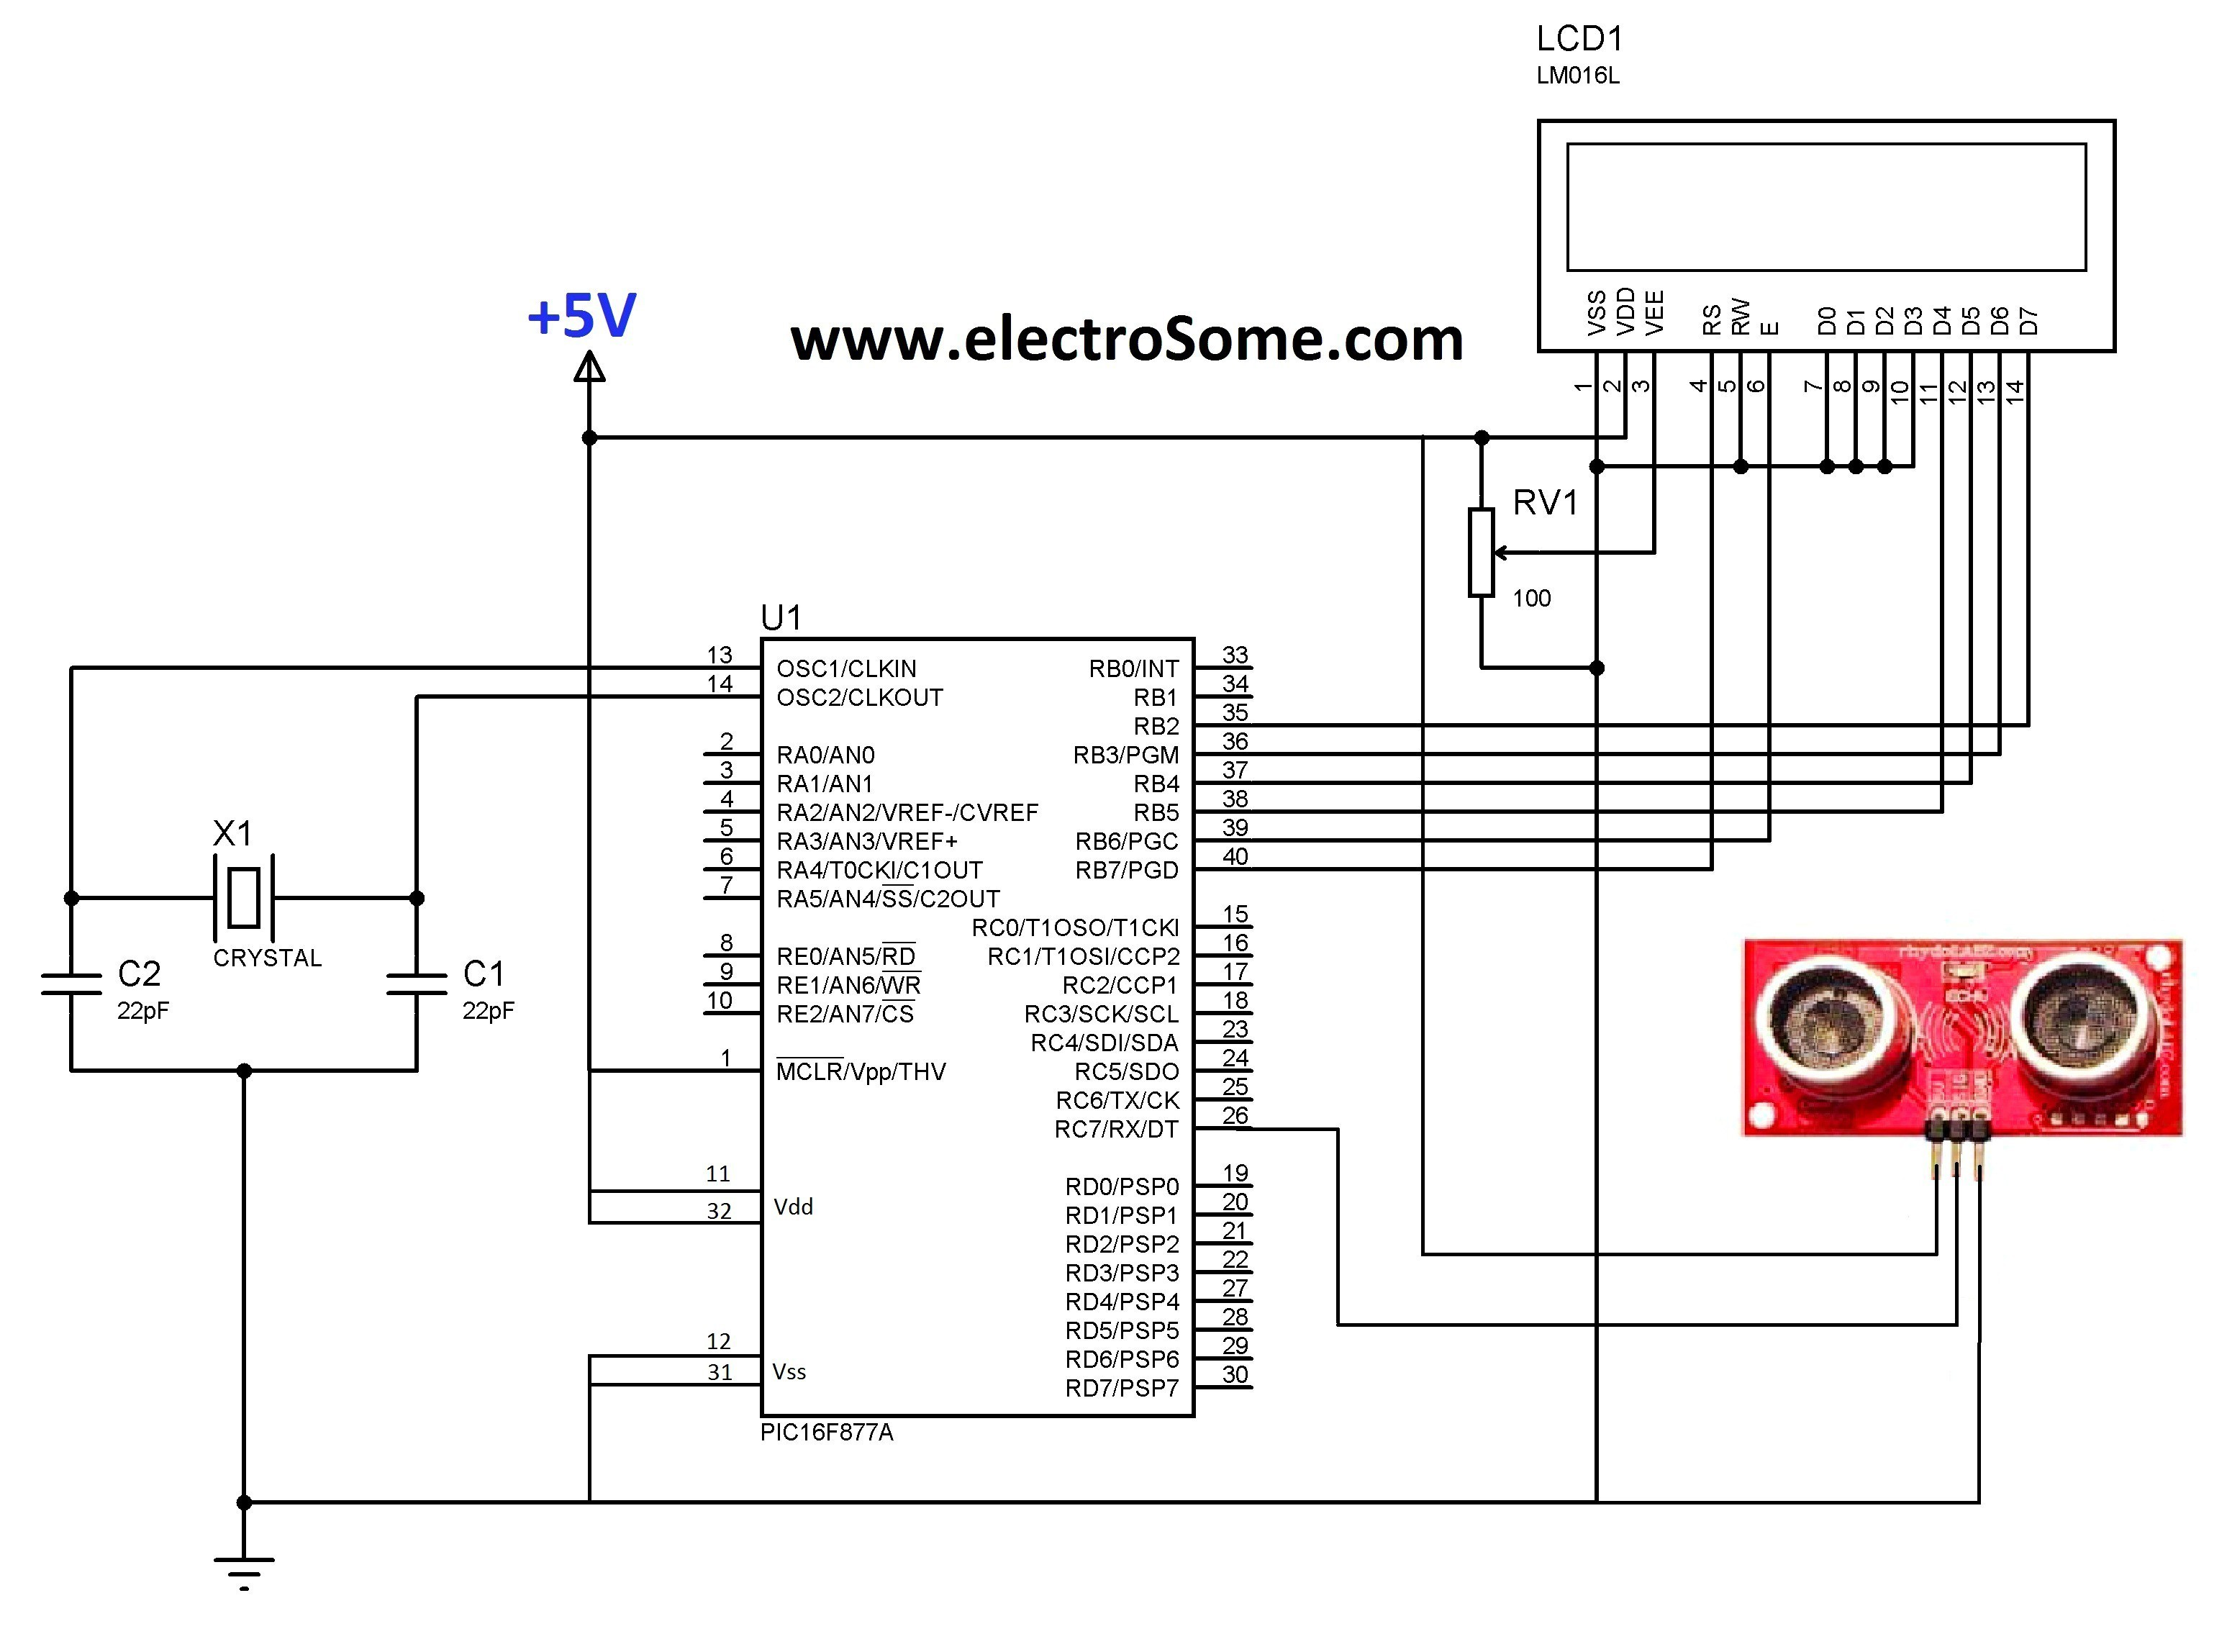 Lighting Contactor Wiring Diagram Photocell F62dca3 tork Lighting Contactor Wiring Diagram Of Lighting Contactor Wiring Diagram Photocell